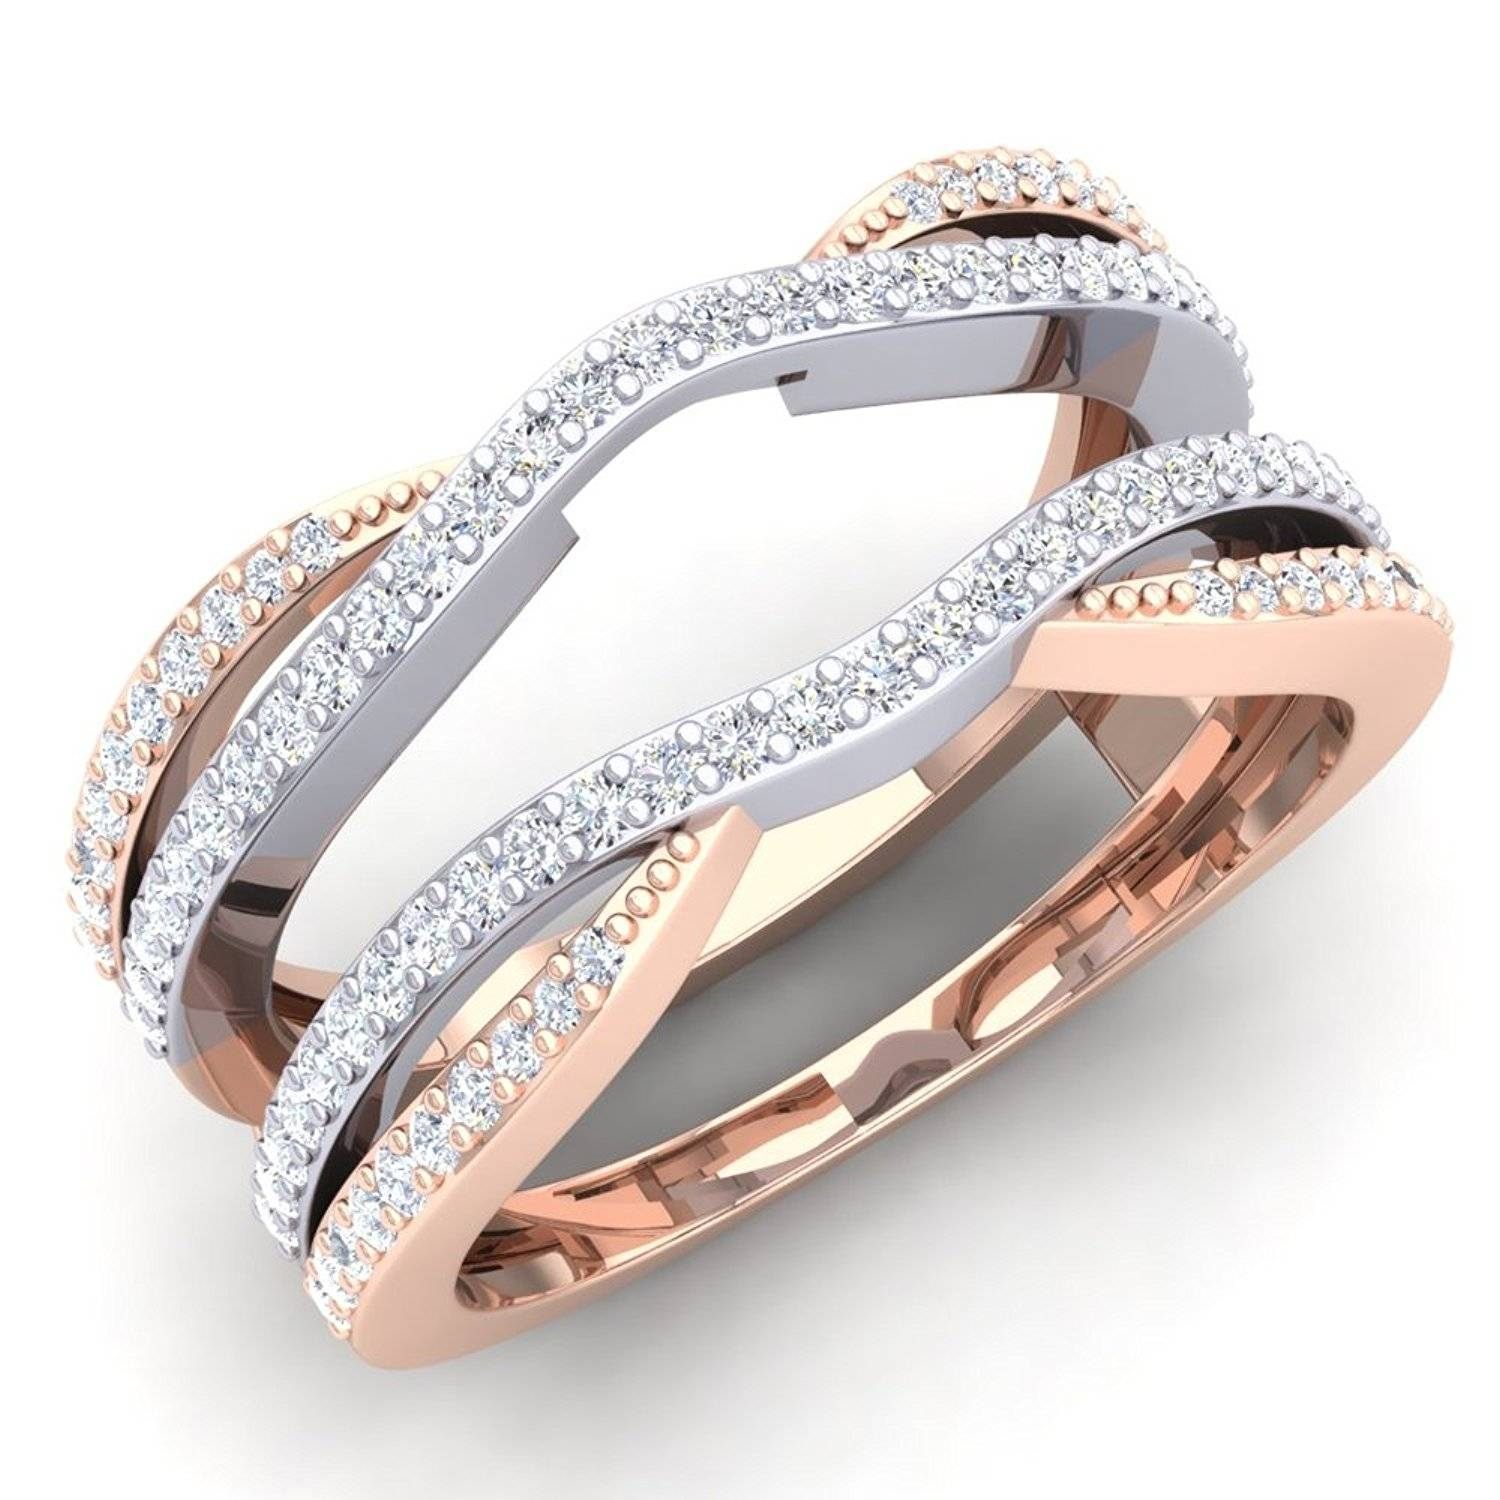 Ring Unique Wedding Rings Without Diamonds Morganite And Diamond Throughout Wedding Rings Without Diamonds (View 11 of 15)